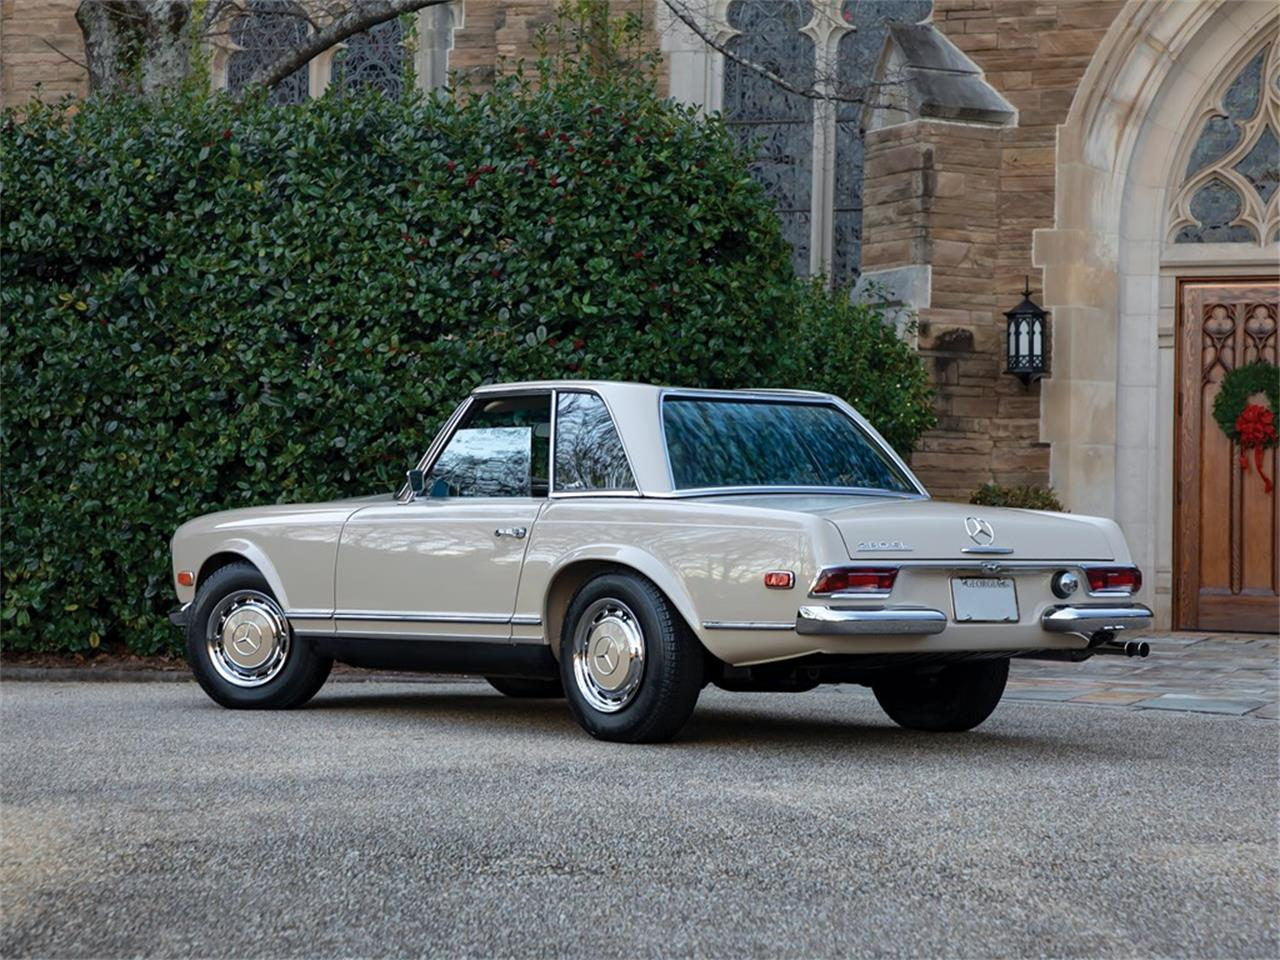 Large Picture of 1968 Mercedes-Benz 280SL Auction Vehicle Offered by RM Sotheby's - PGUM